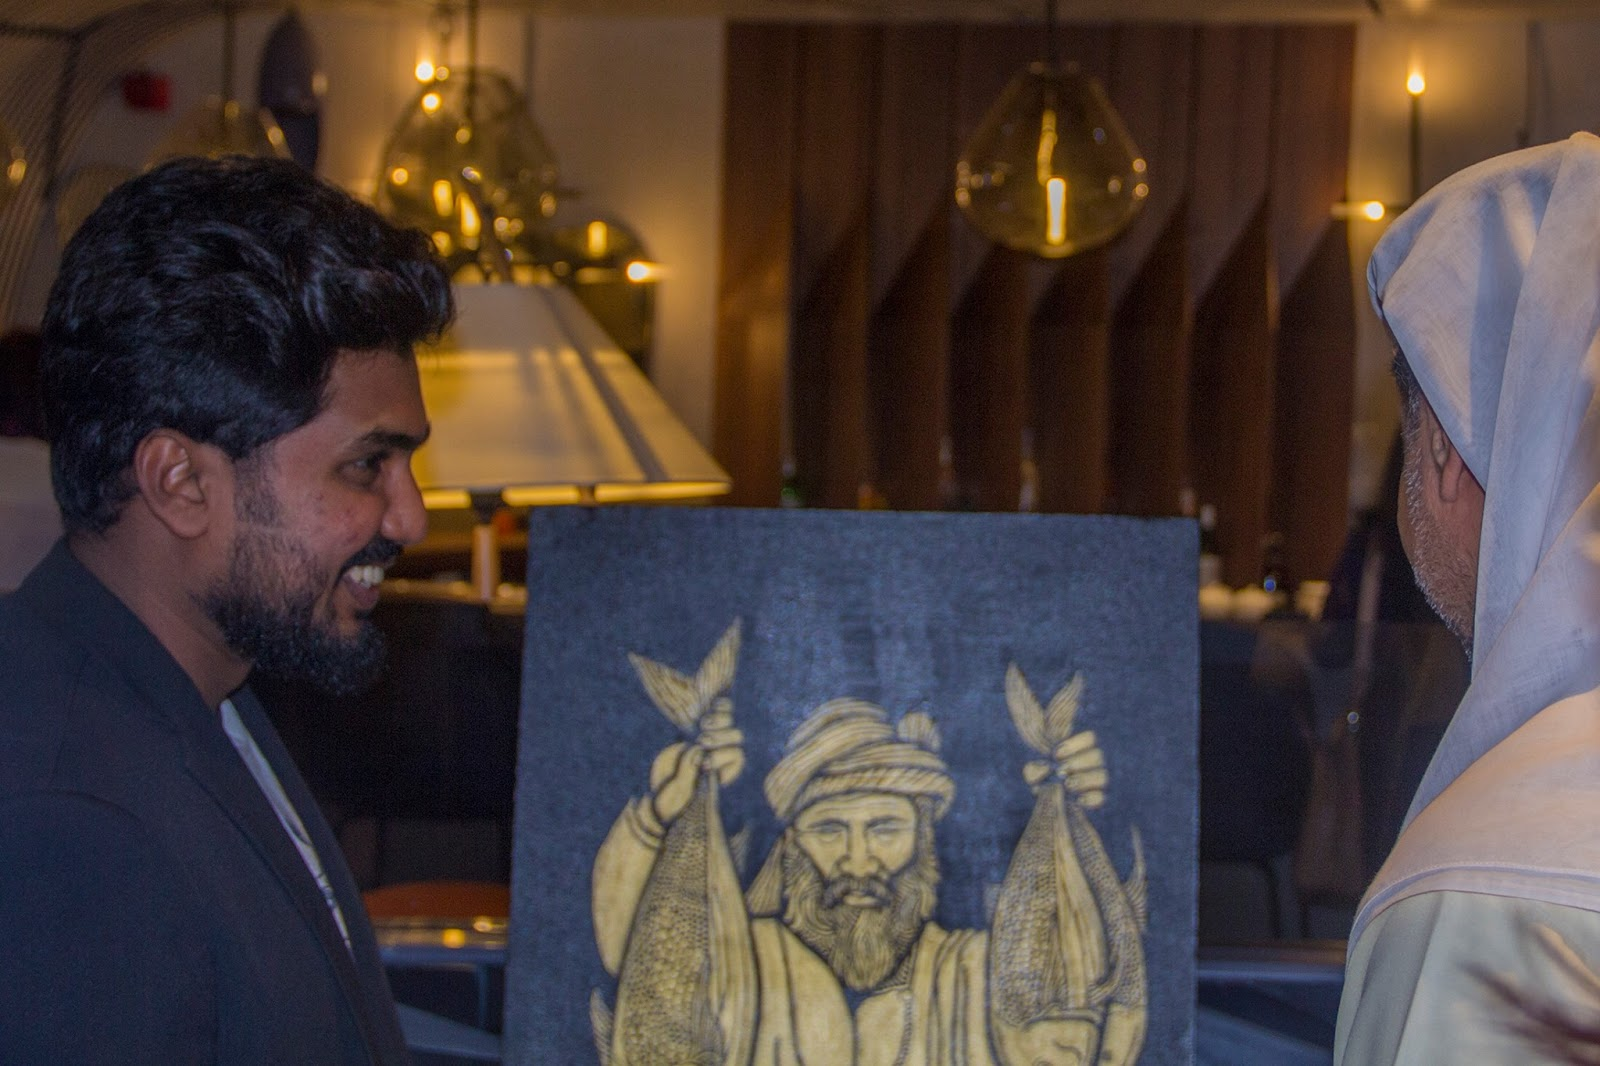 Artist Sijin Gopinathan in Year of Zayed (UAE culture & tradition) - Art Exhibition